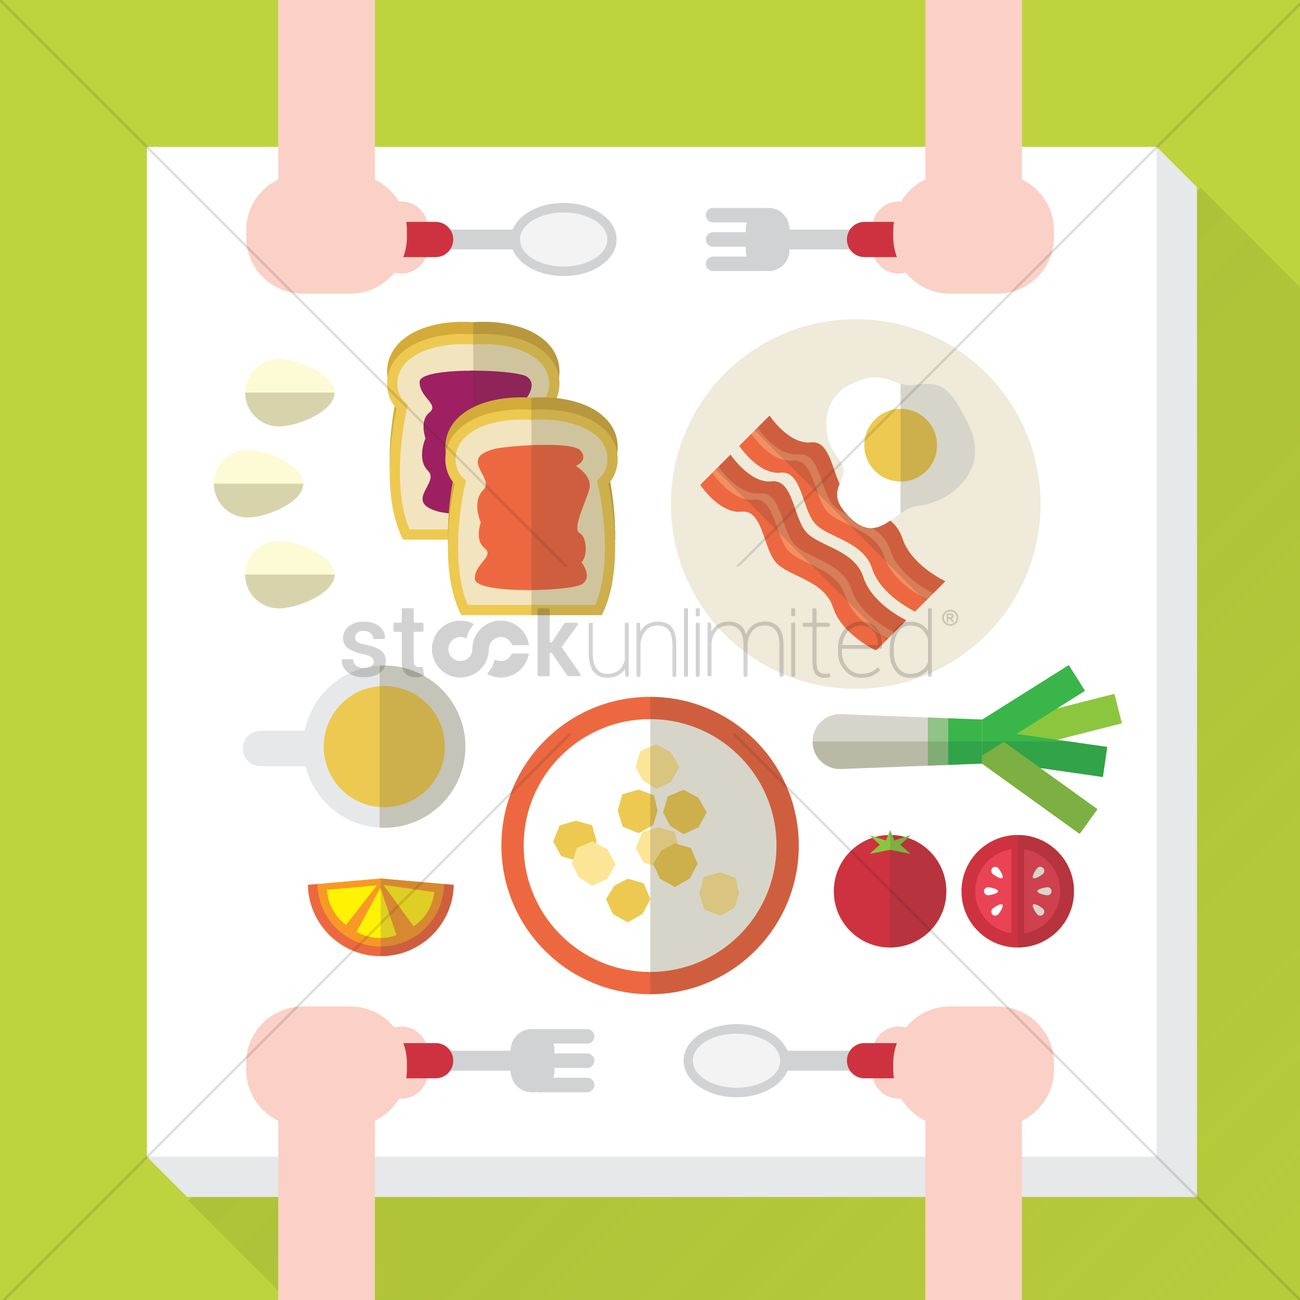 breakfast table setting vector graphic  sc 1 st  StockUnlimited & Breakfast table setting Vector Image - 1410037 | StockUnlimited